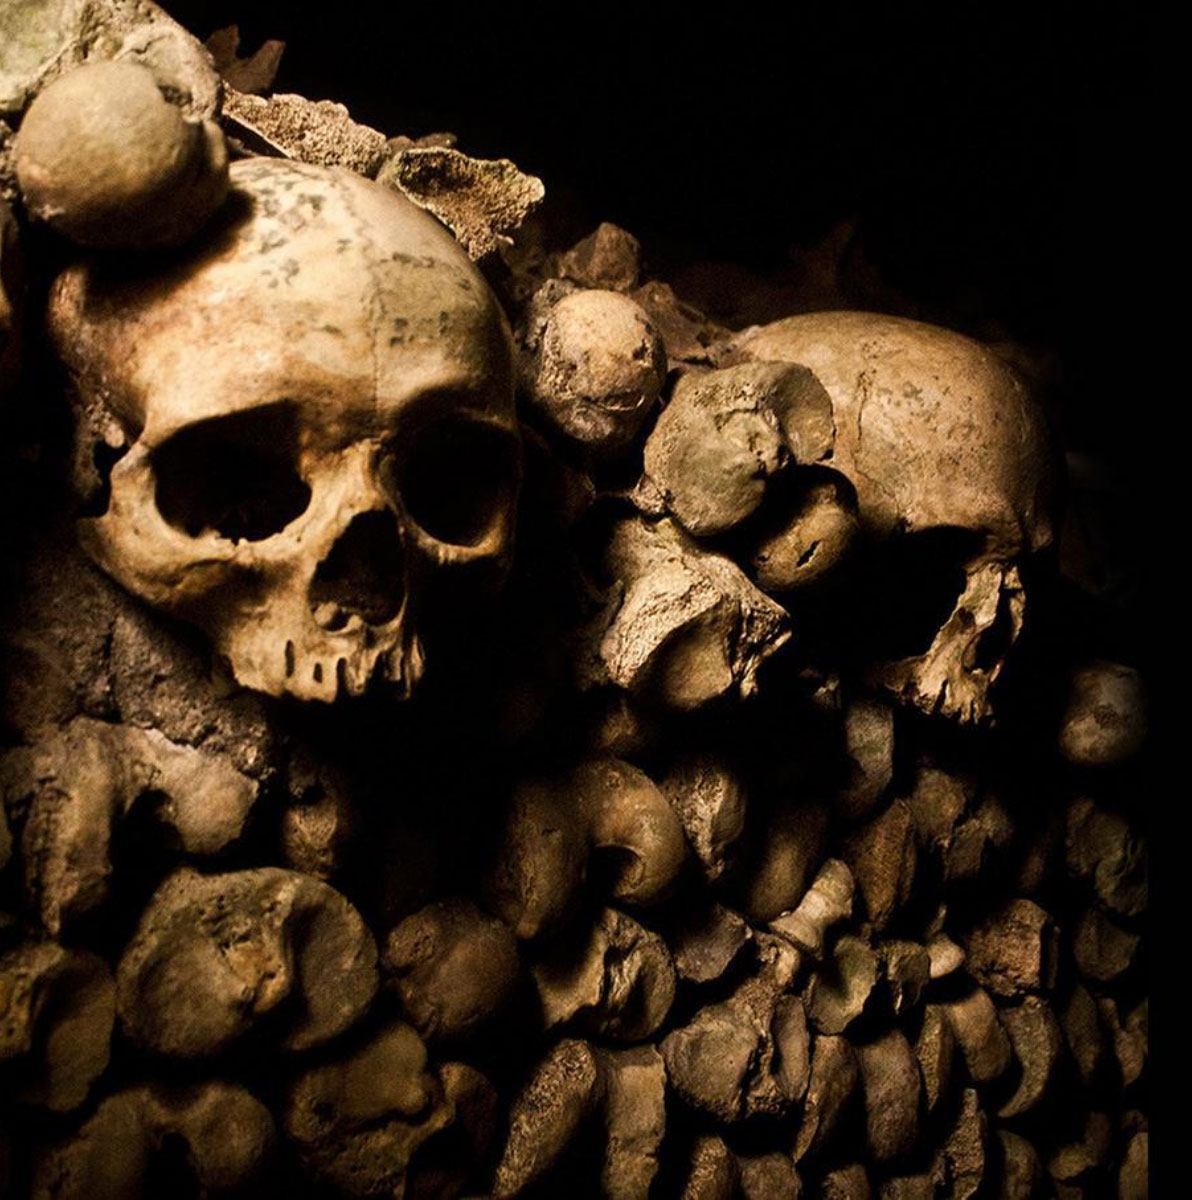 The Catacombs in Paris, France